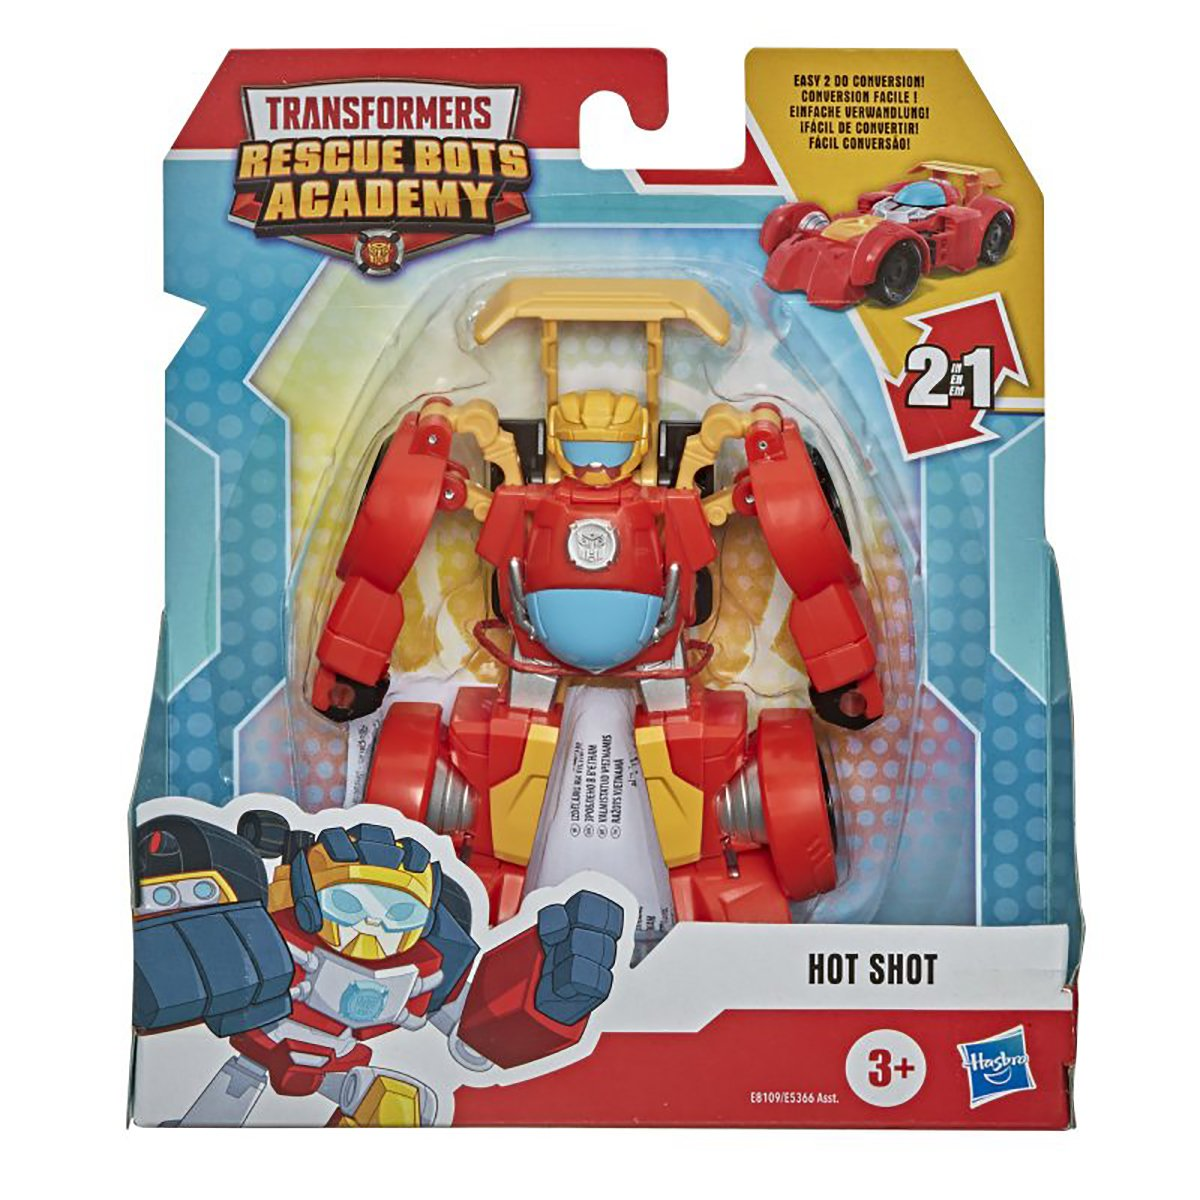 Figurina Transformers Rescue Bots Academy, Hot Shot, E8109